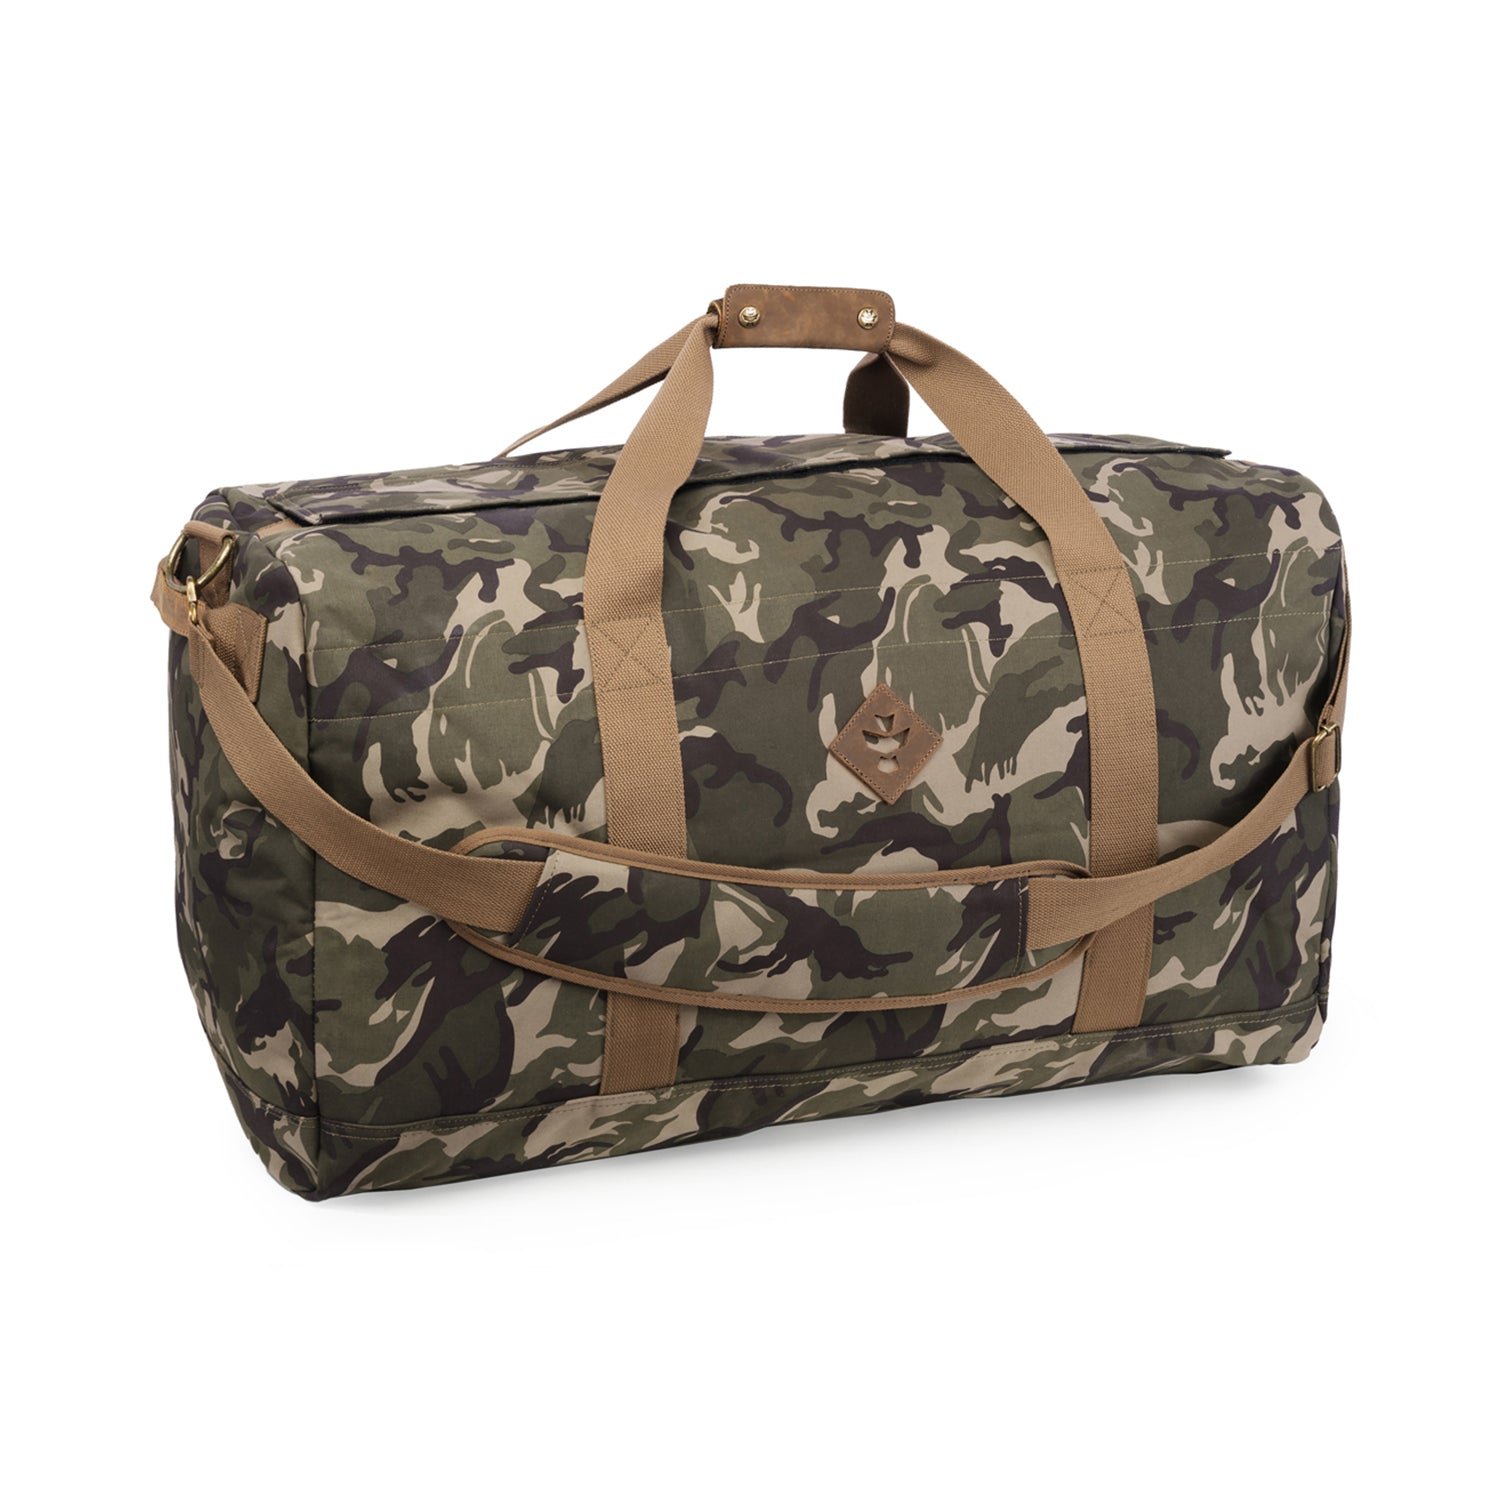 Camo Brown Canvas Smell Proof Water Resistant Large Duffle Bag